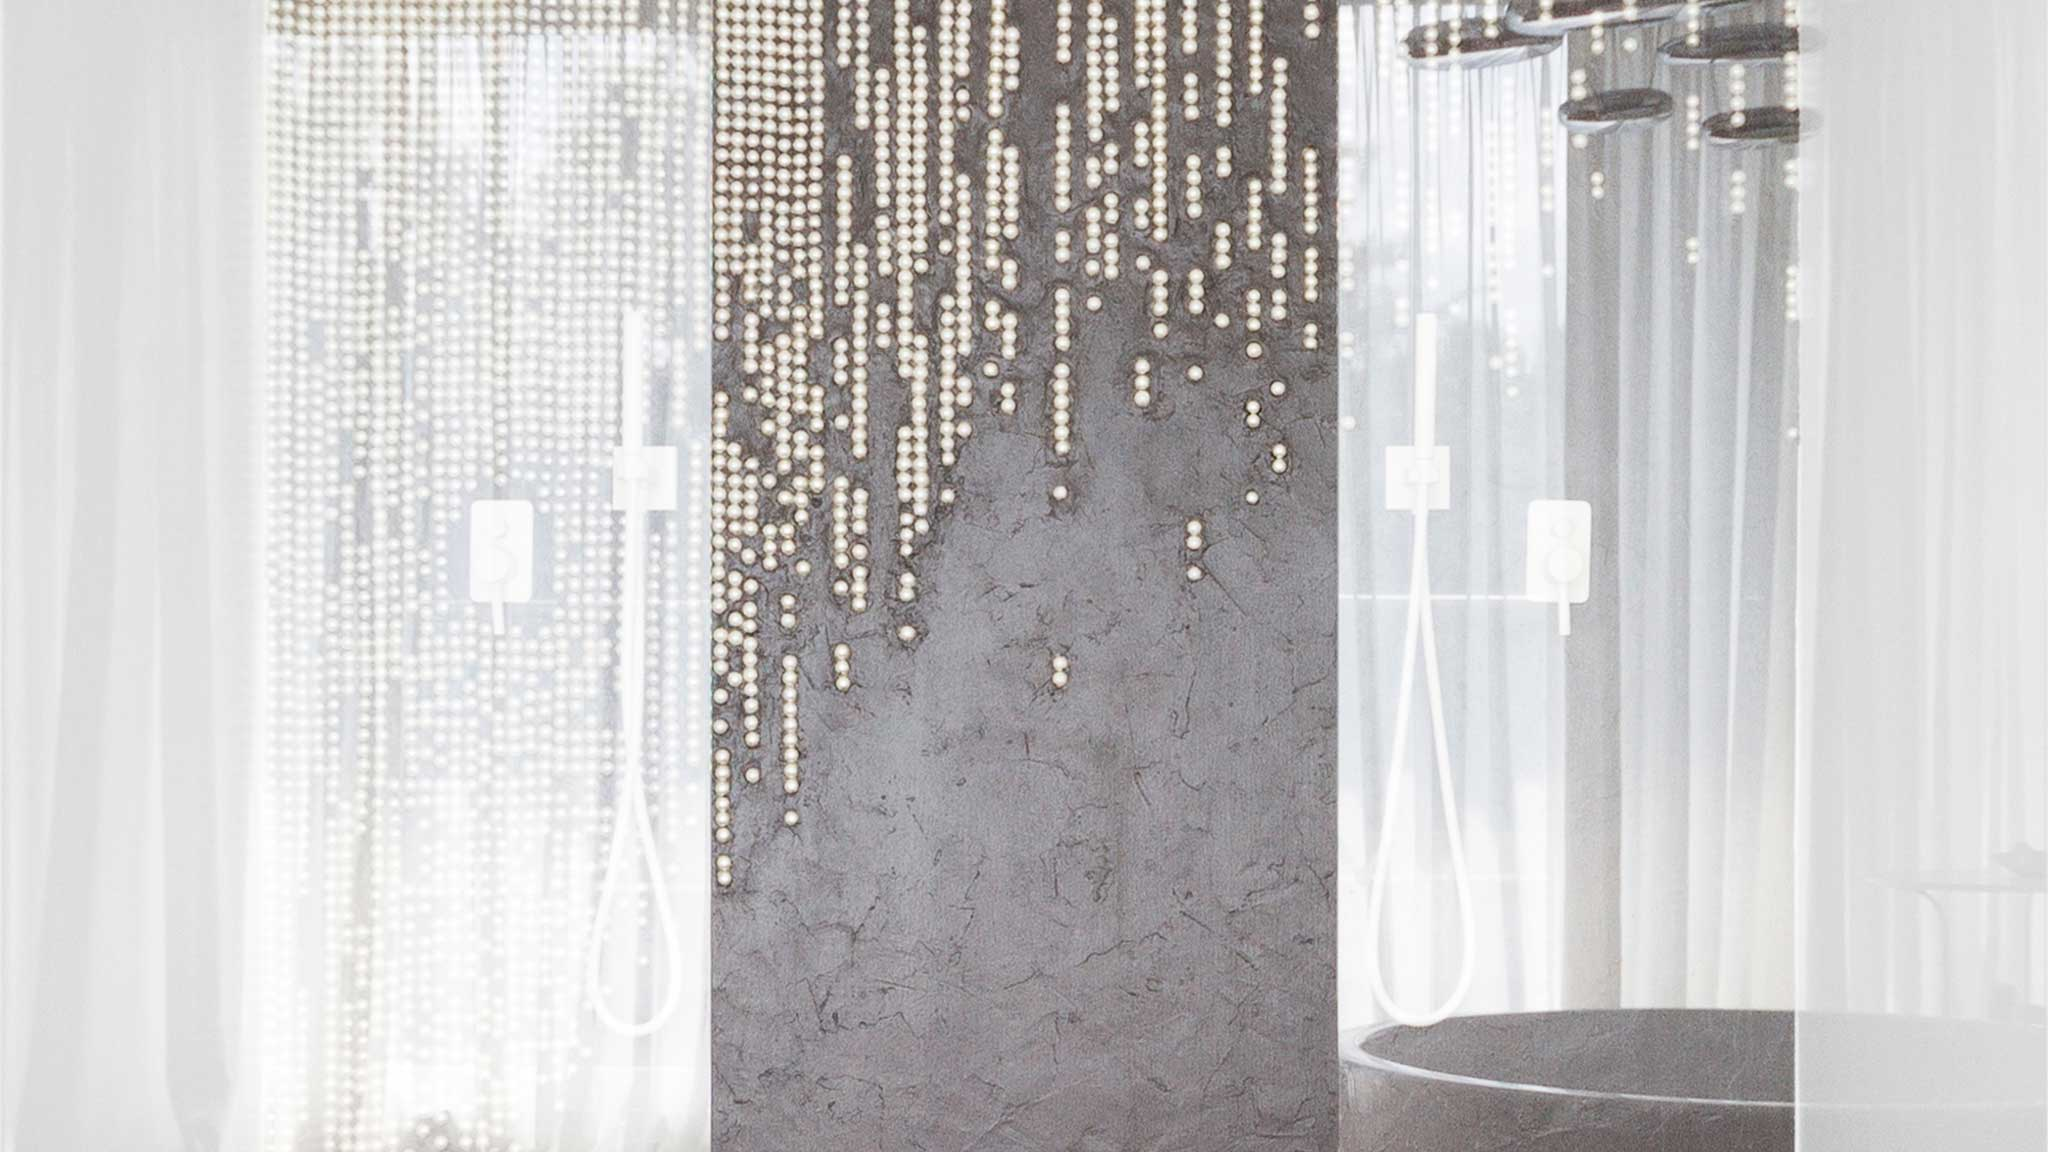 Wall Covering Ideas From Knitted Fabric To Powdered Insect Wings Financial Times